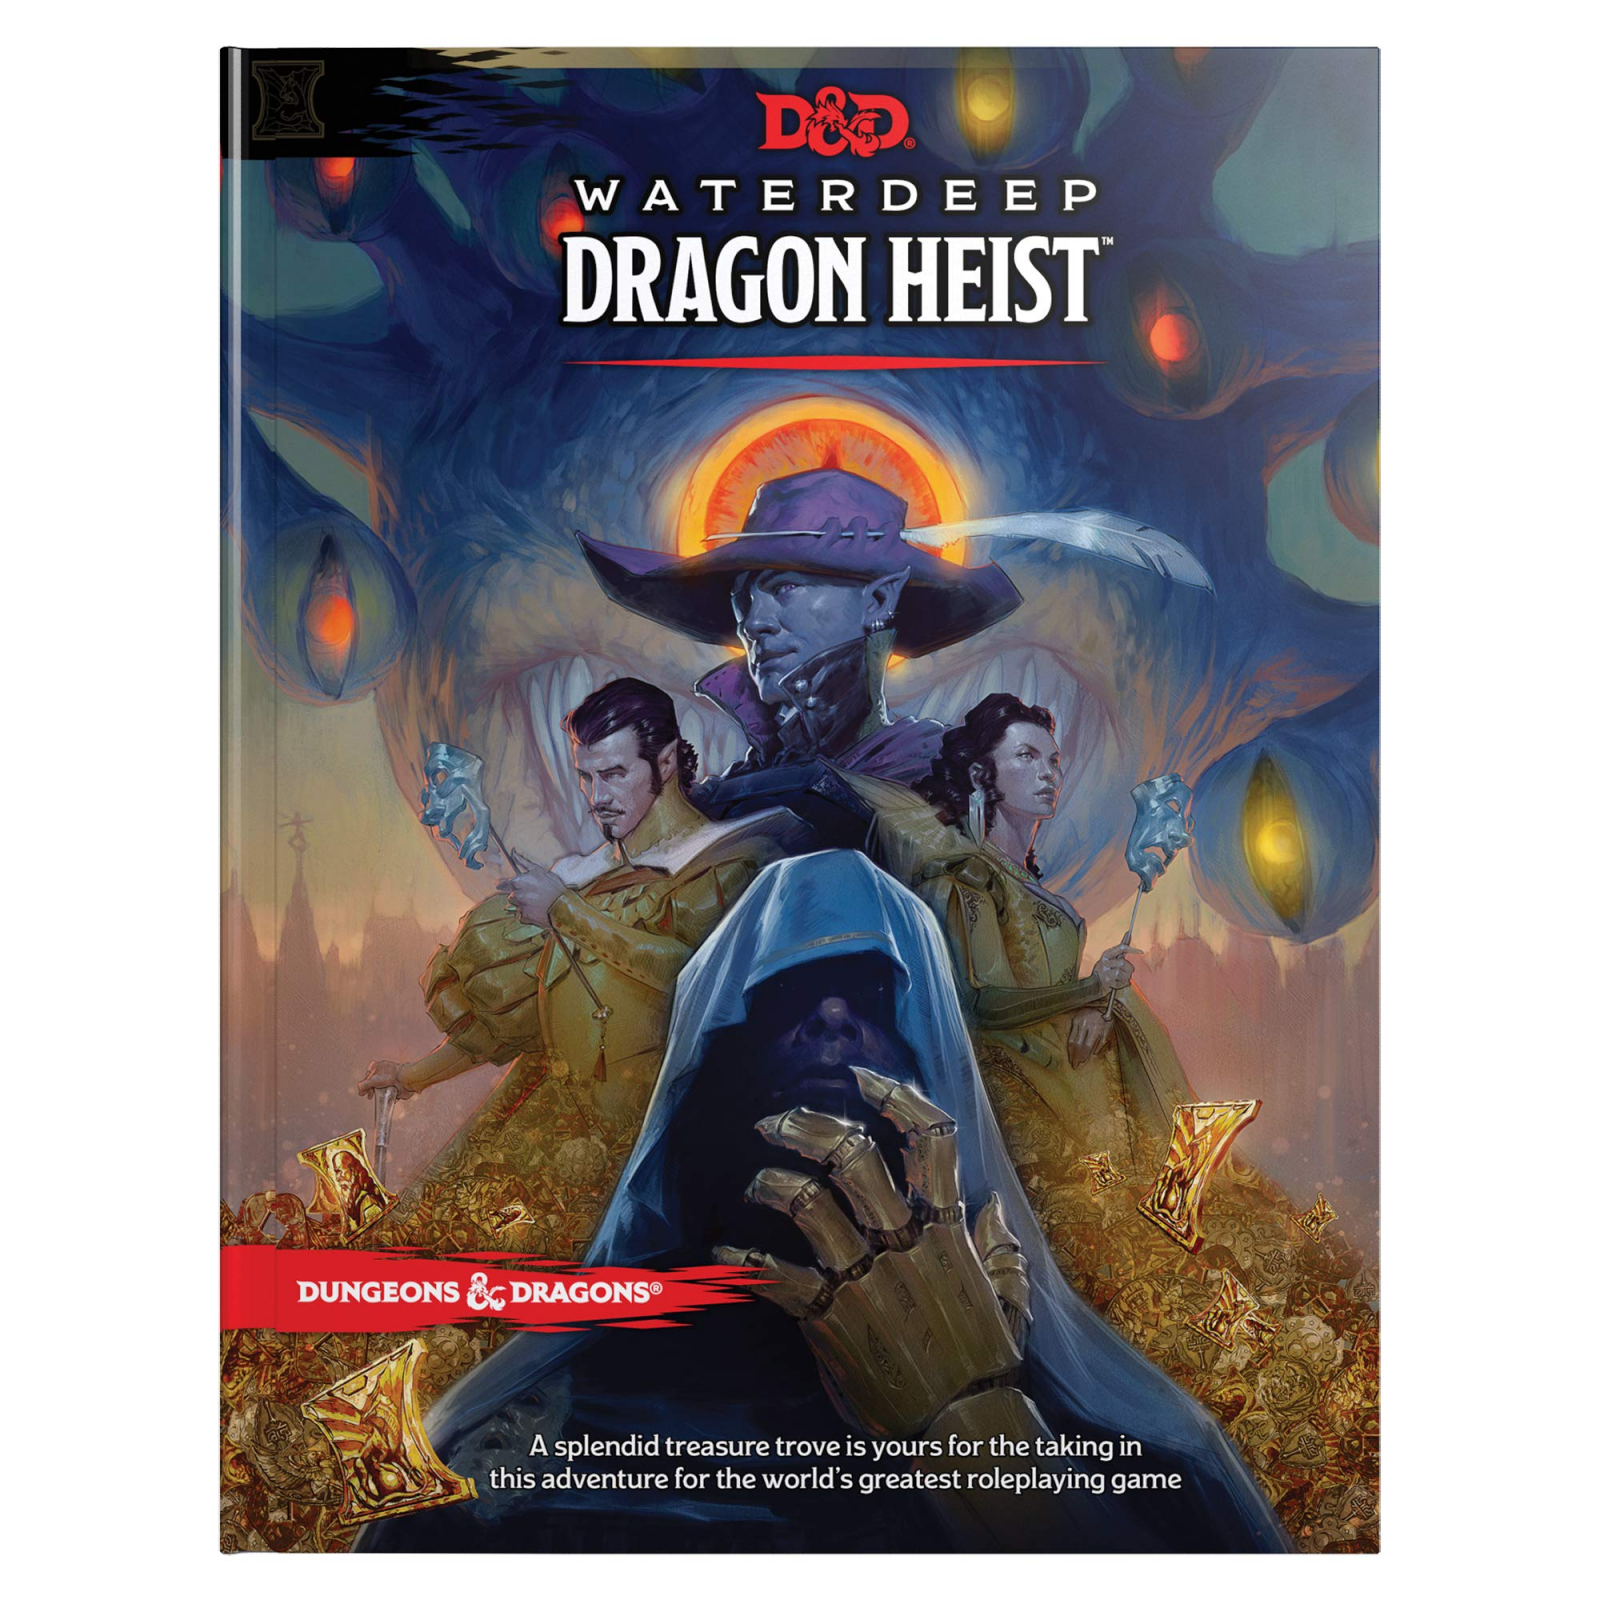 Waterdeep Dragon Heist Book